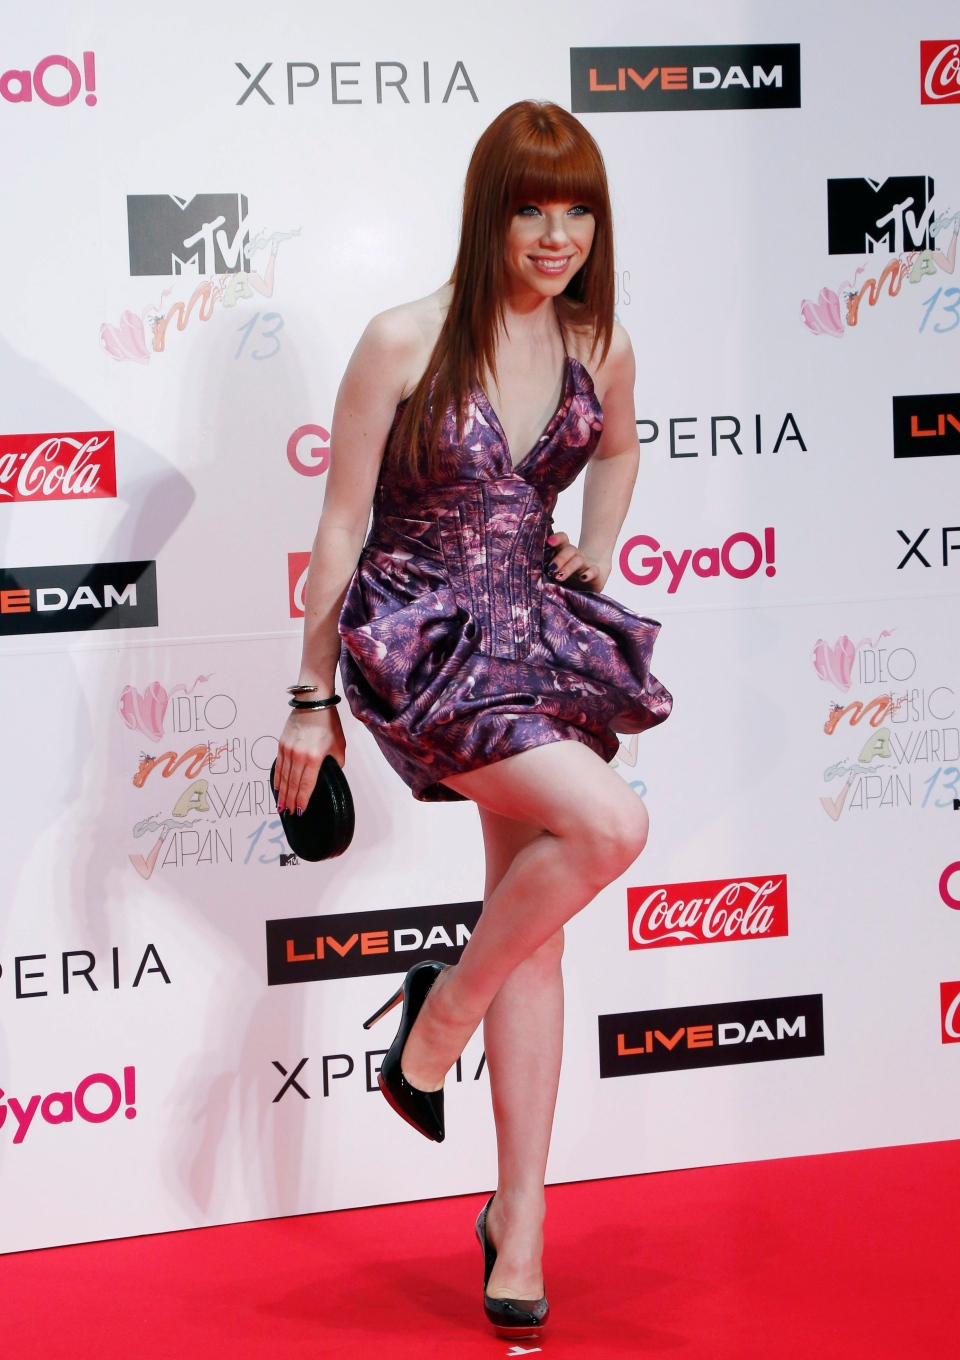 Canadian singer Carly Rae Jepsen poses for photographers upon arrival for the MTV Video Music Awards Japan show in Makuhari on Saturday, June 22, 2013. (AP Photo/Koji Sasahara)